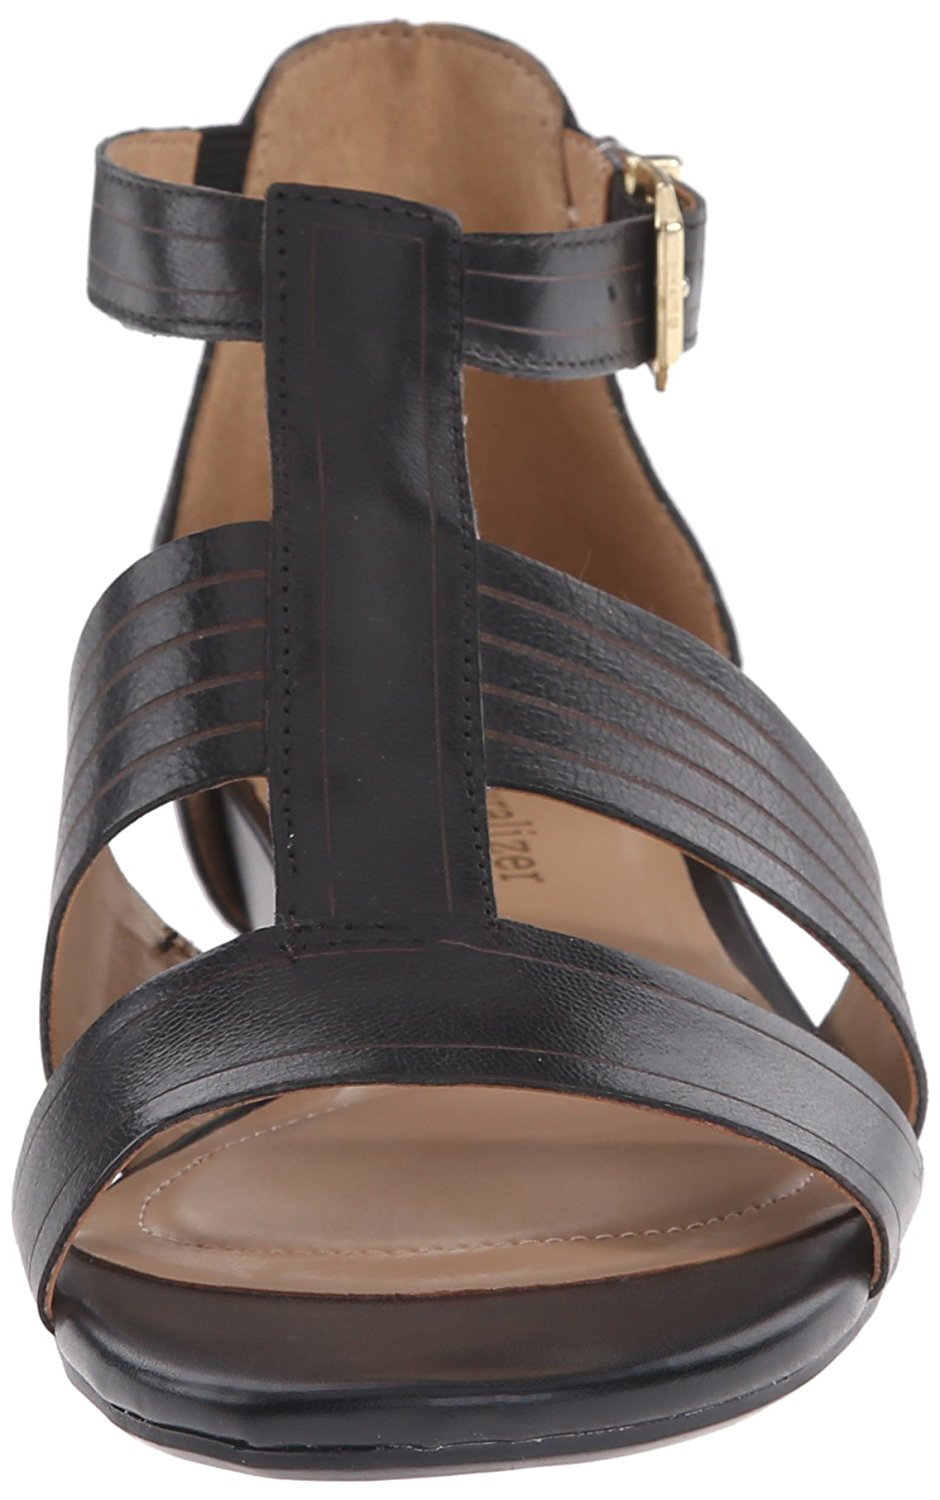 6565d0dab0bc Naturalizer Womens Longing Leather Open Toe Casual T-Strap Sandals